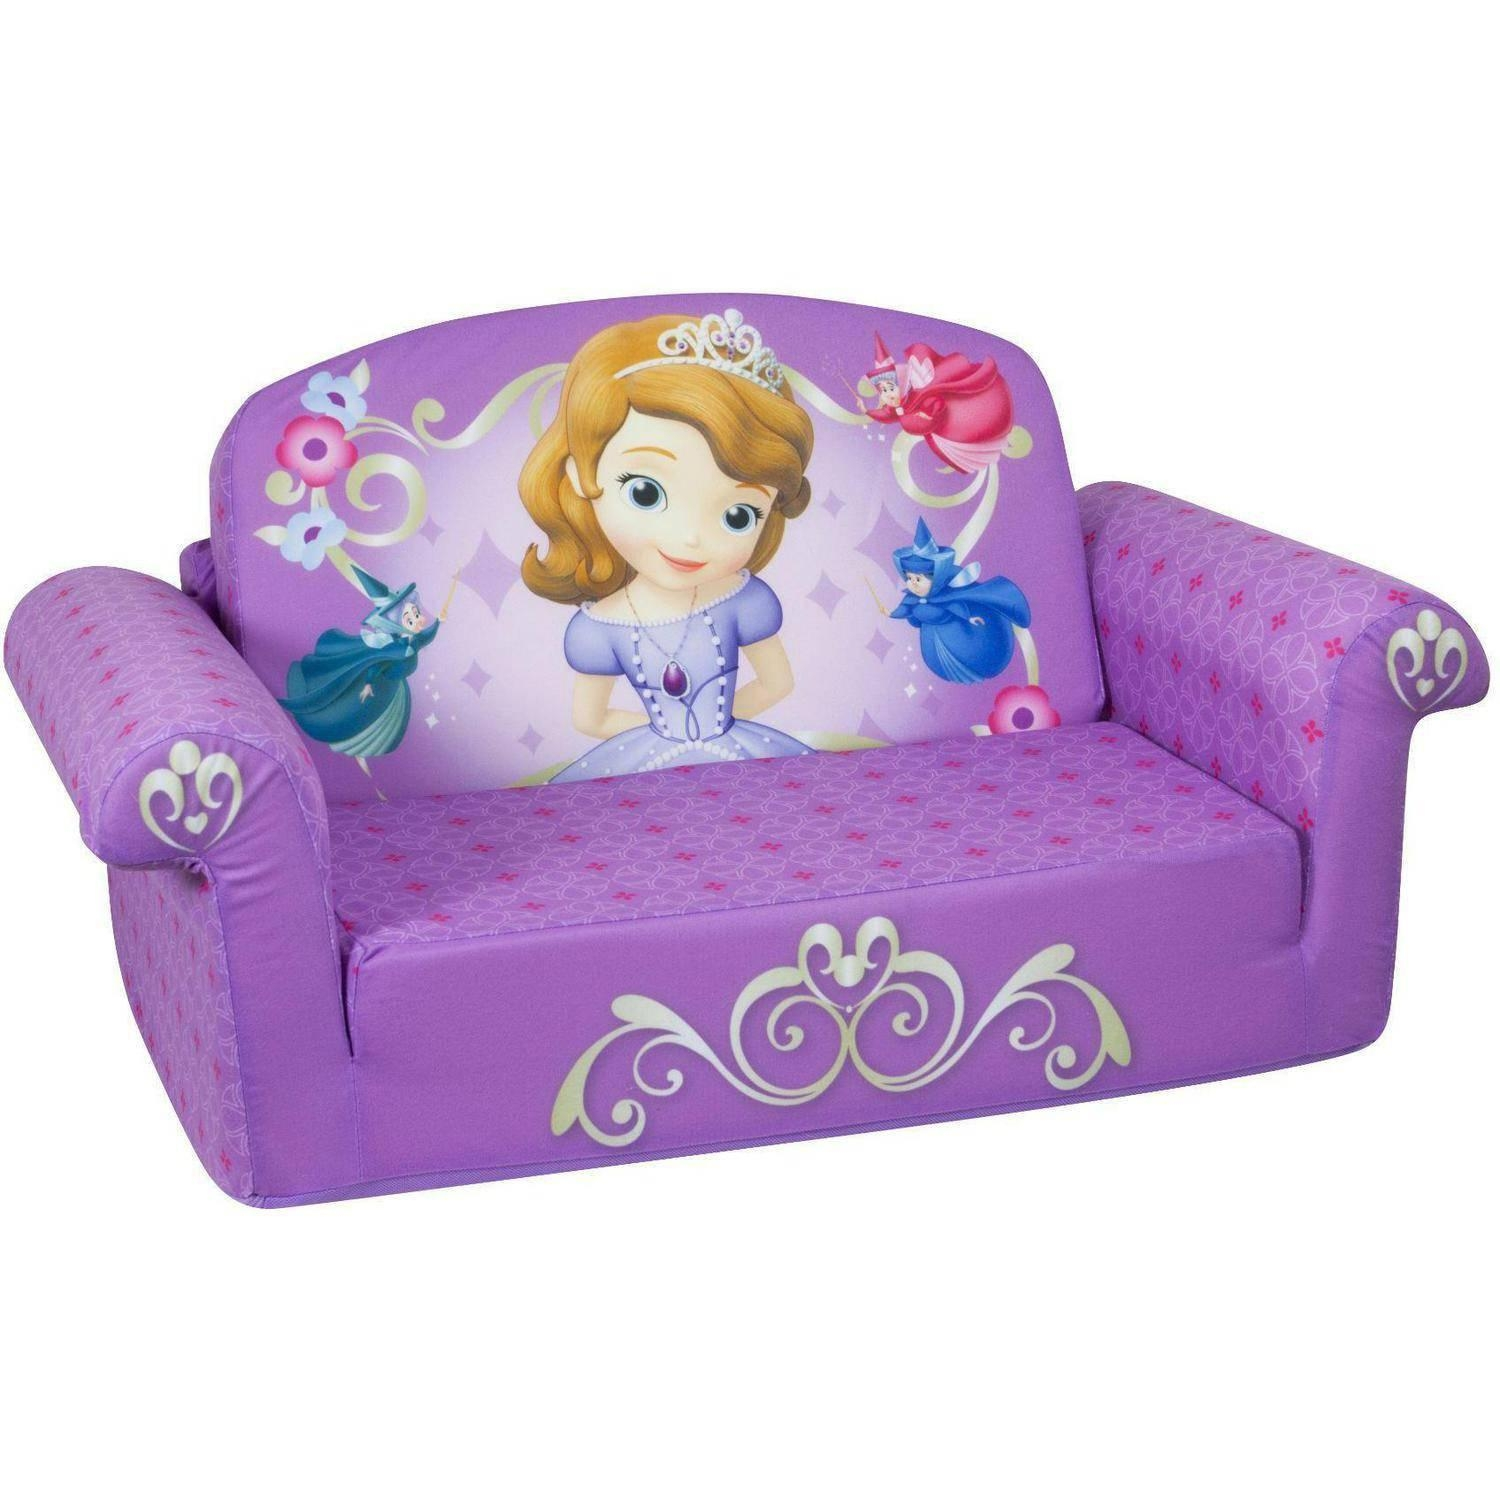 Sofas Center : Flip Openofa Disney Cars My Blog Cheapest For Kids Inside Disney Princess Sofas (Image 16 of 20)